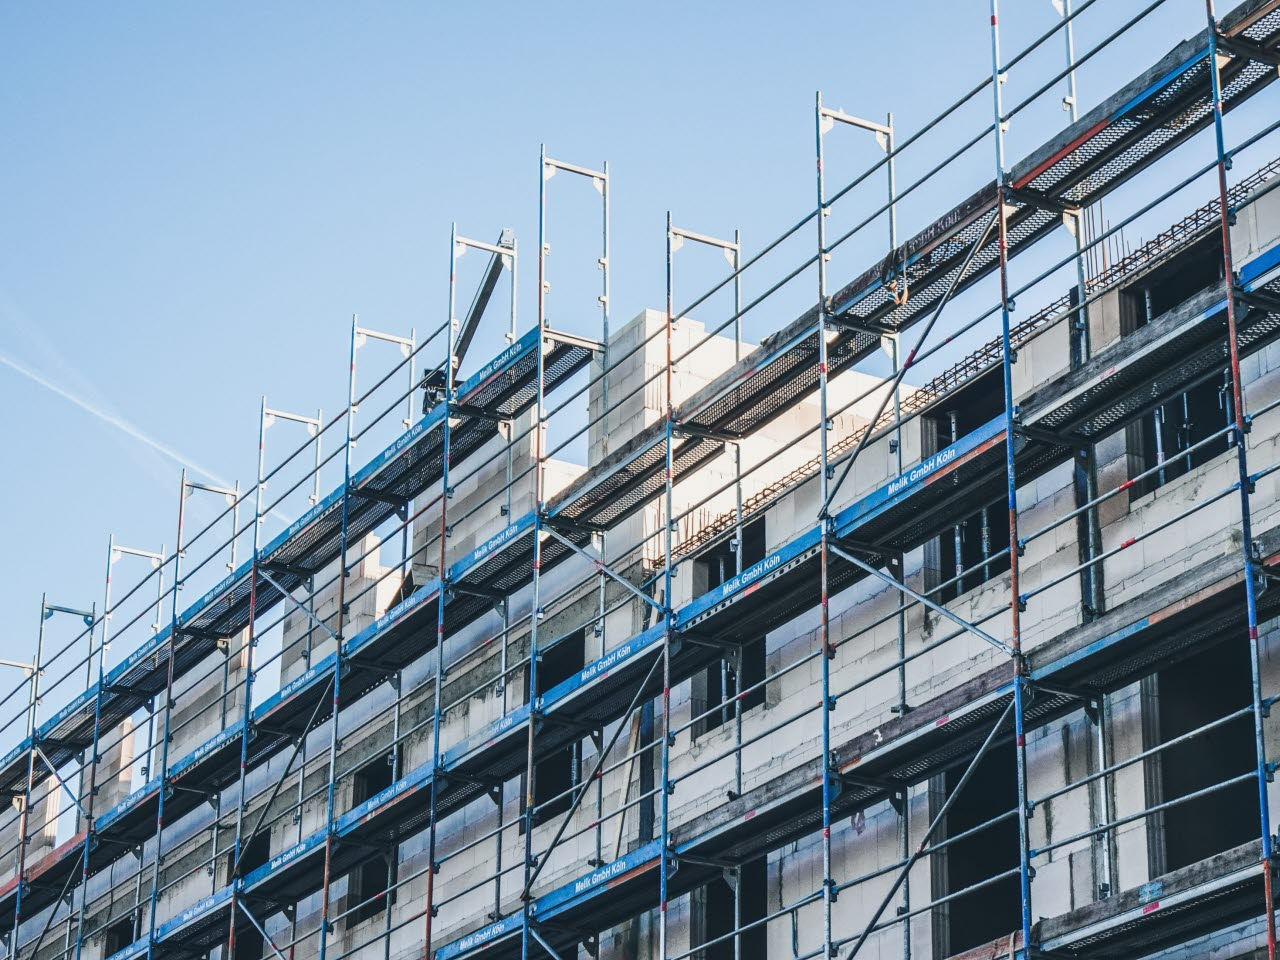 Scaffolding on a large building